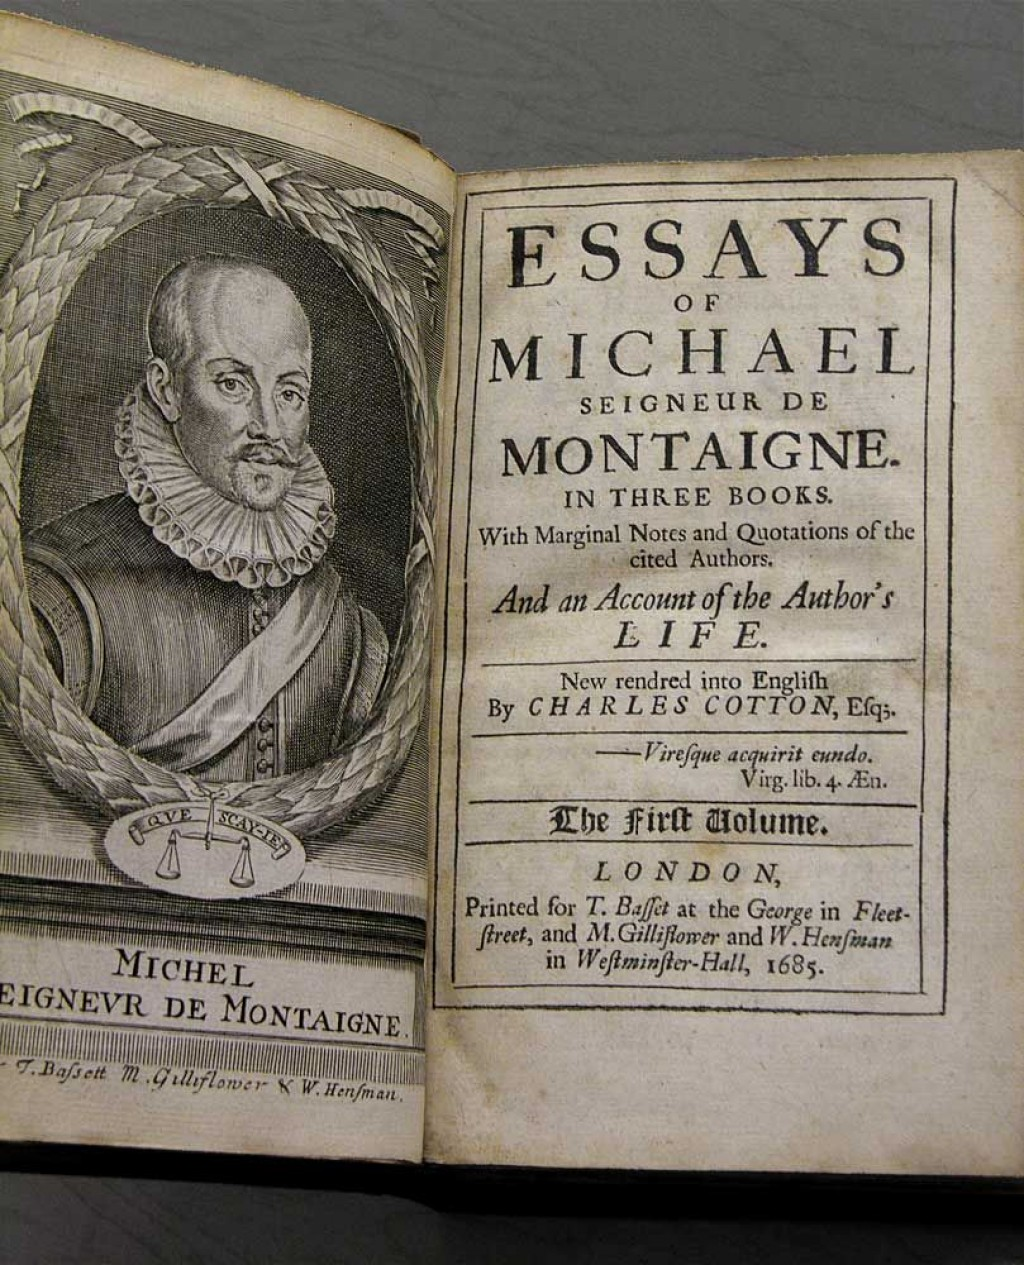 003 Michel Montaigne Essays Essay Example Frightening De On Experience Summary Quotes Large